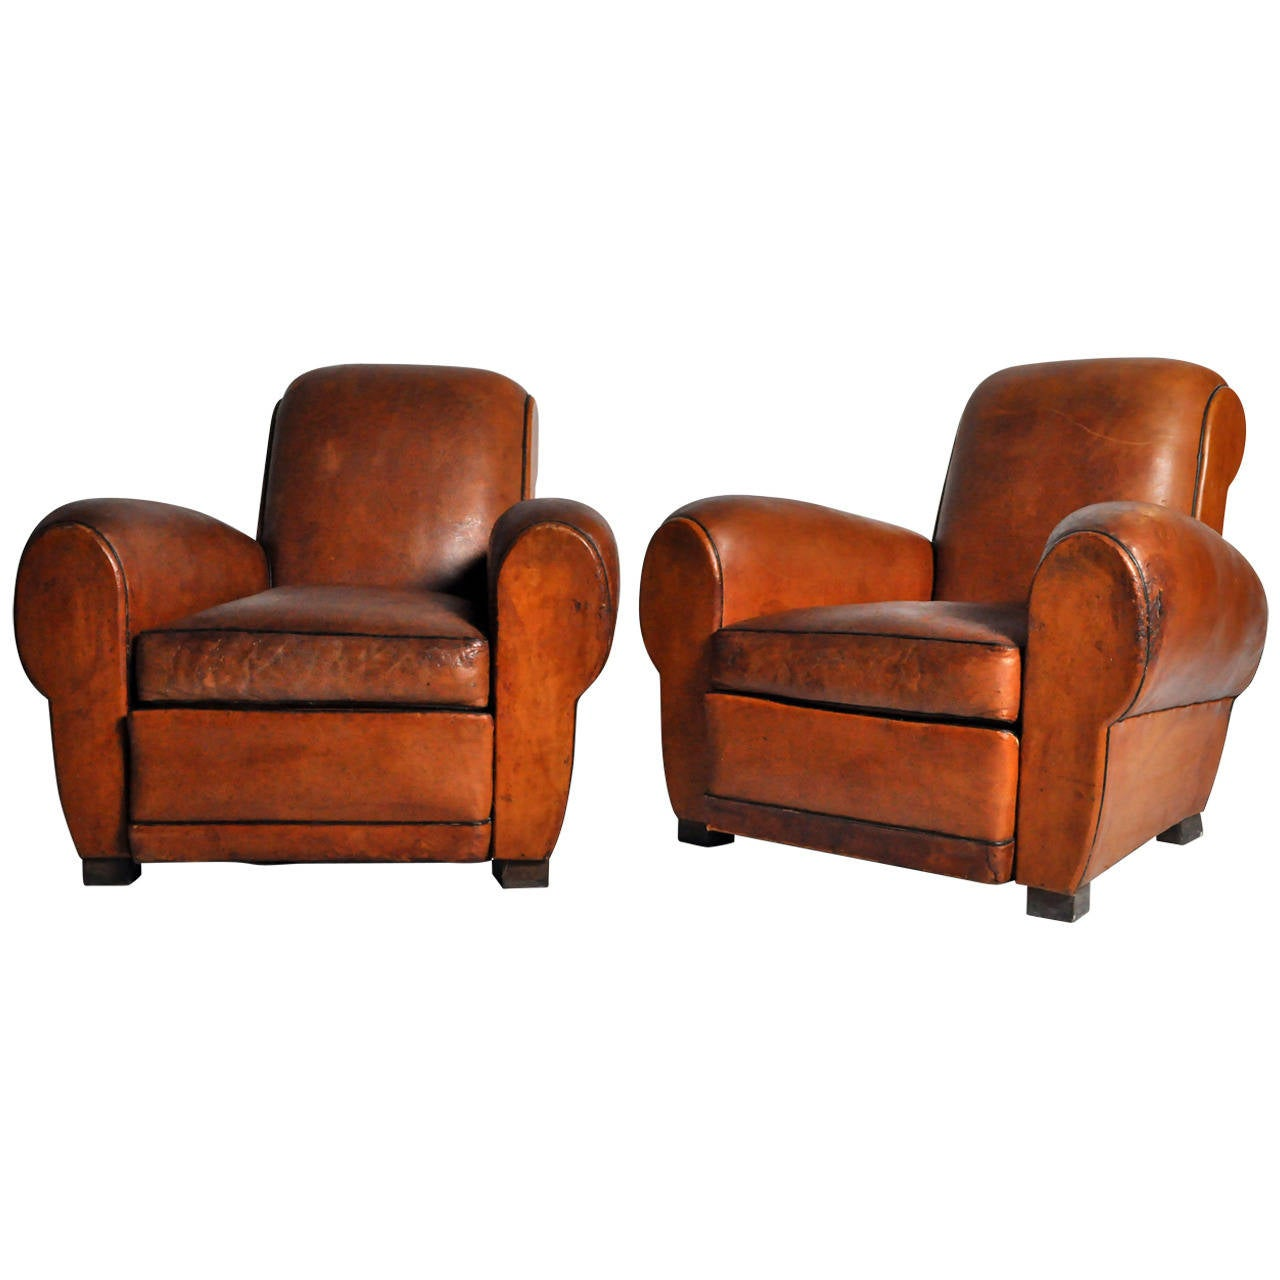 French art deco leather club chairs at 1stdibs for Art deco furniture chicago